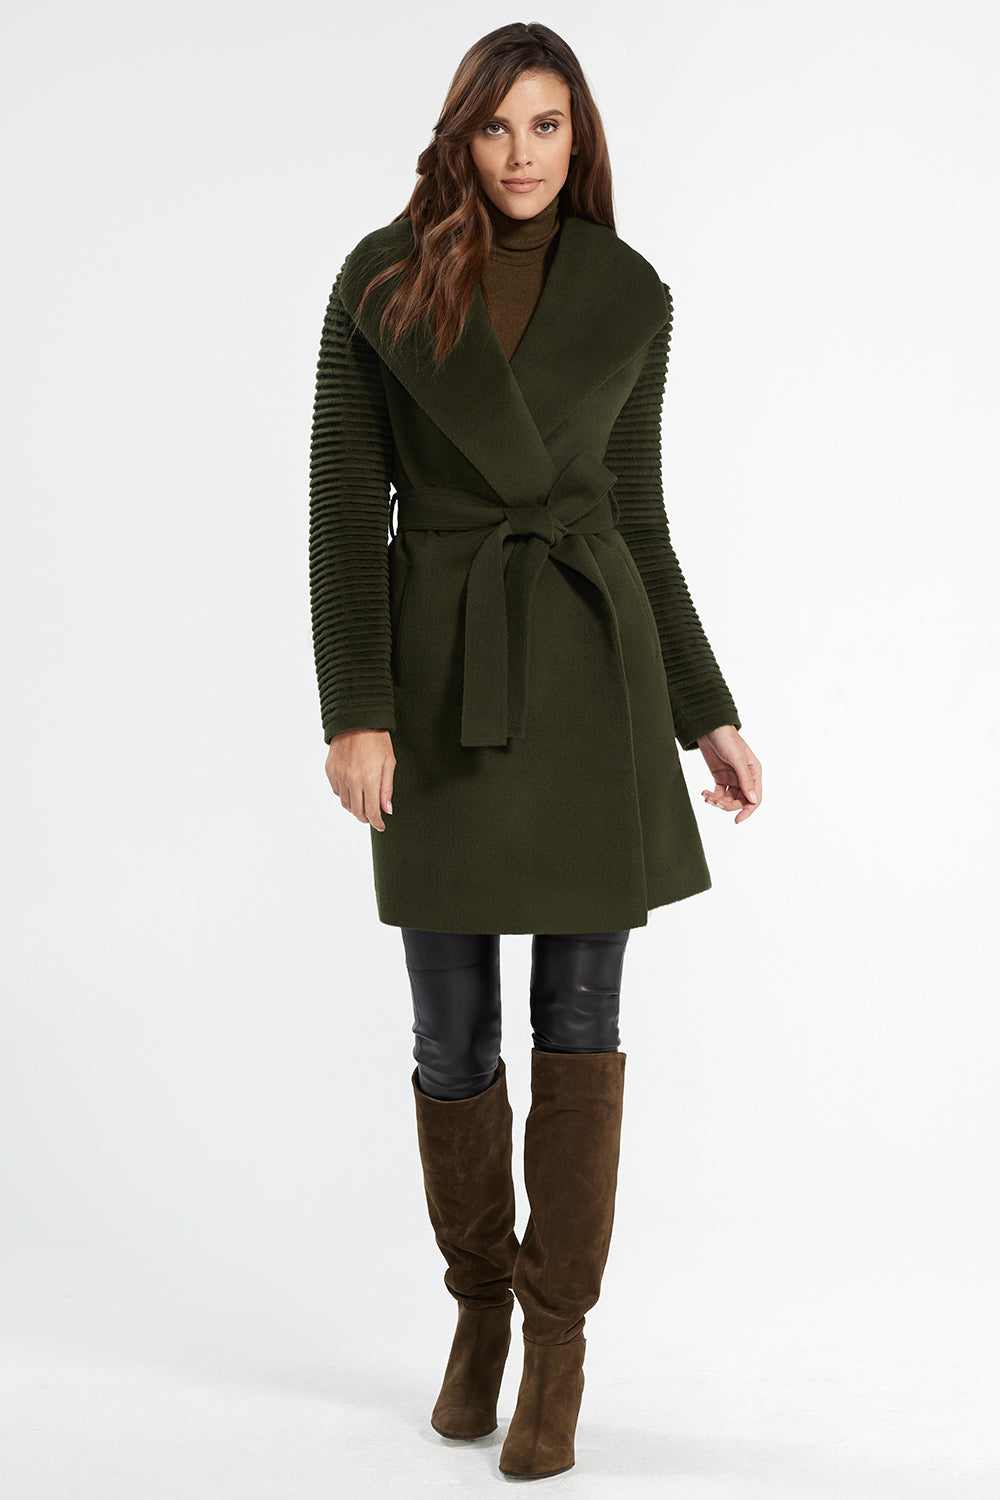 Sentaler Mid Length Shawl Collar Wrap Coat with Ribbed Sleeves featured in Baby Alpaca and available in Olive. Seen from front.